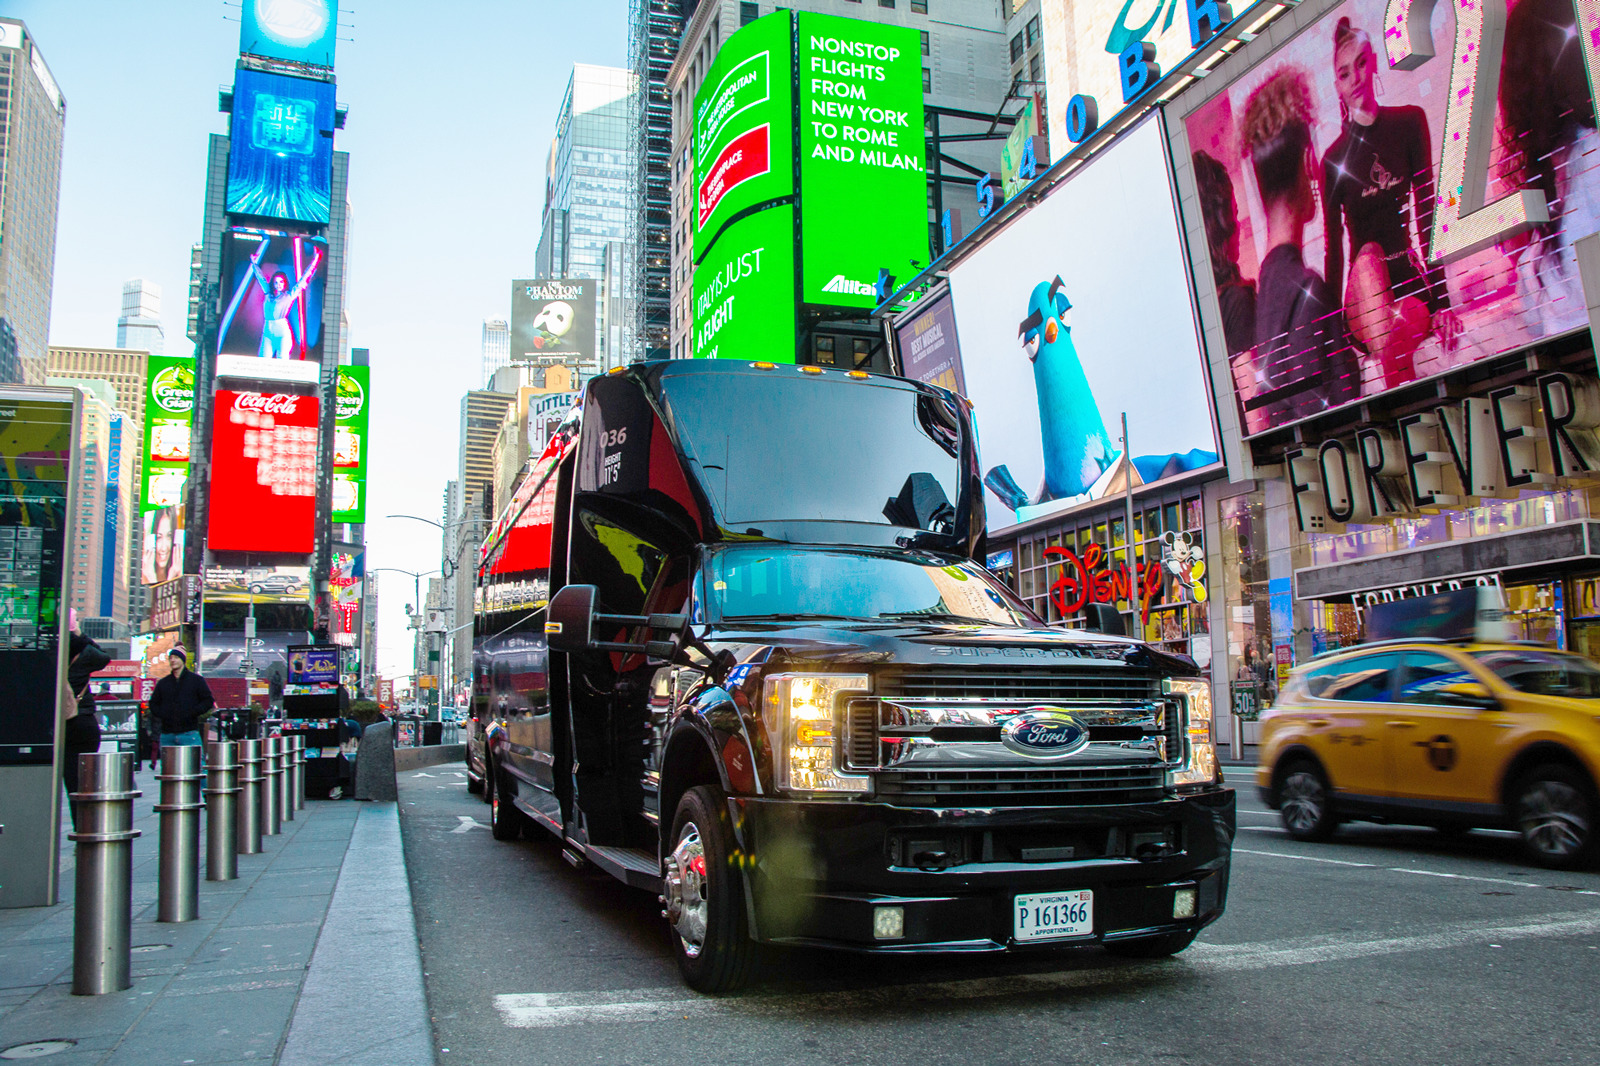 NYC Bus Tours by USA Guided Tours